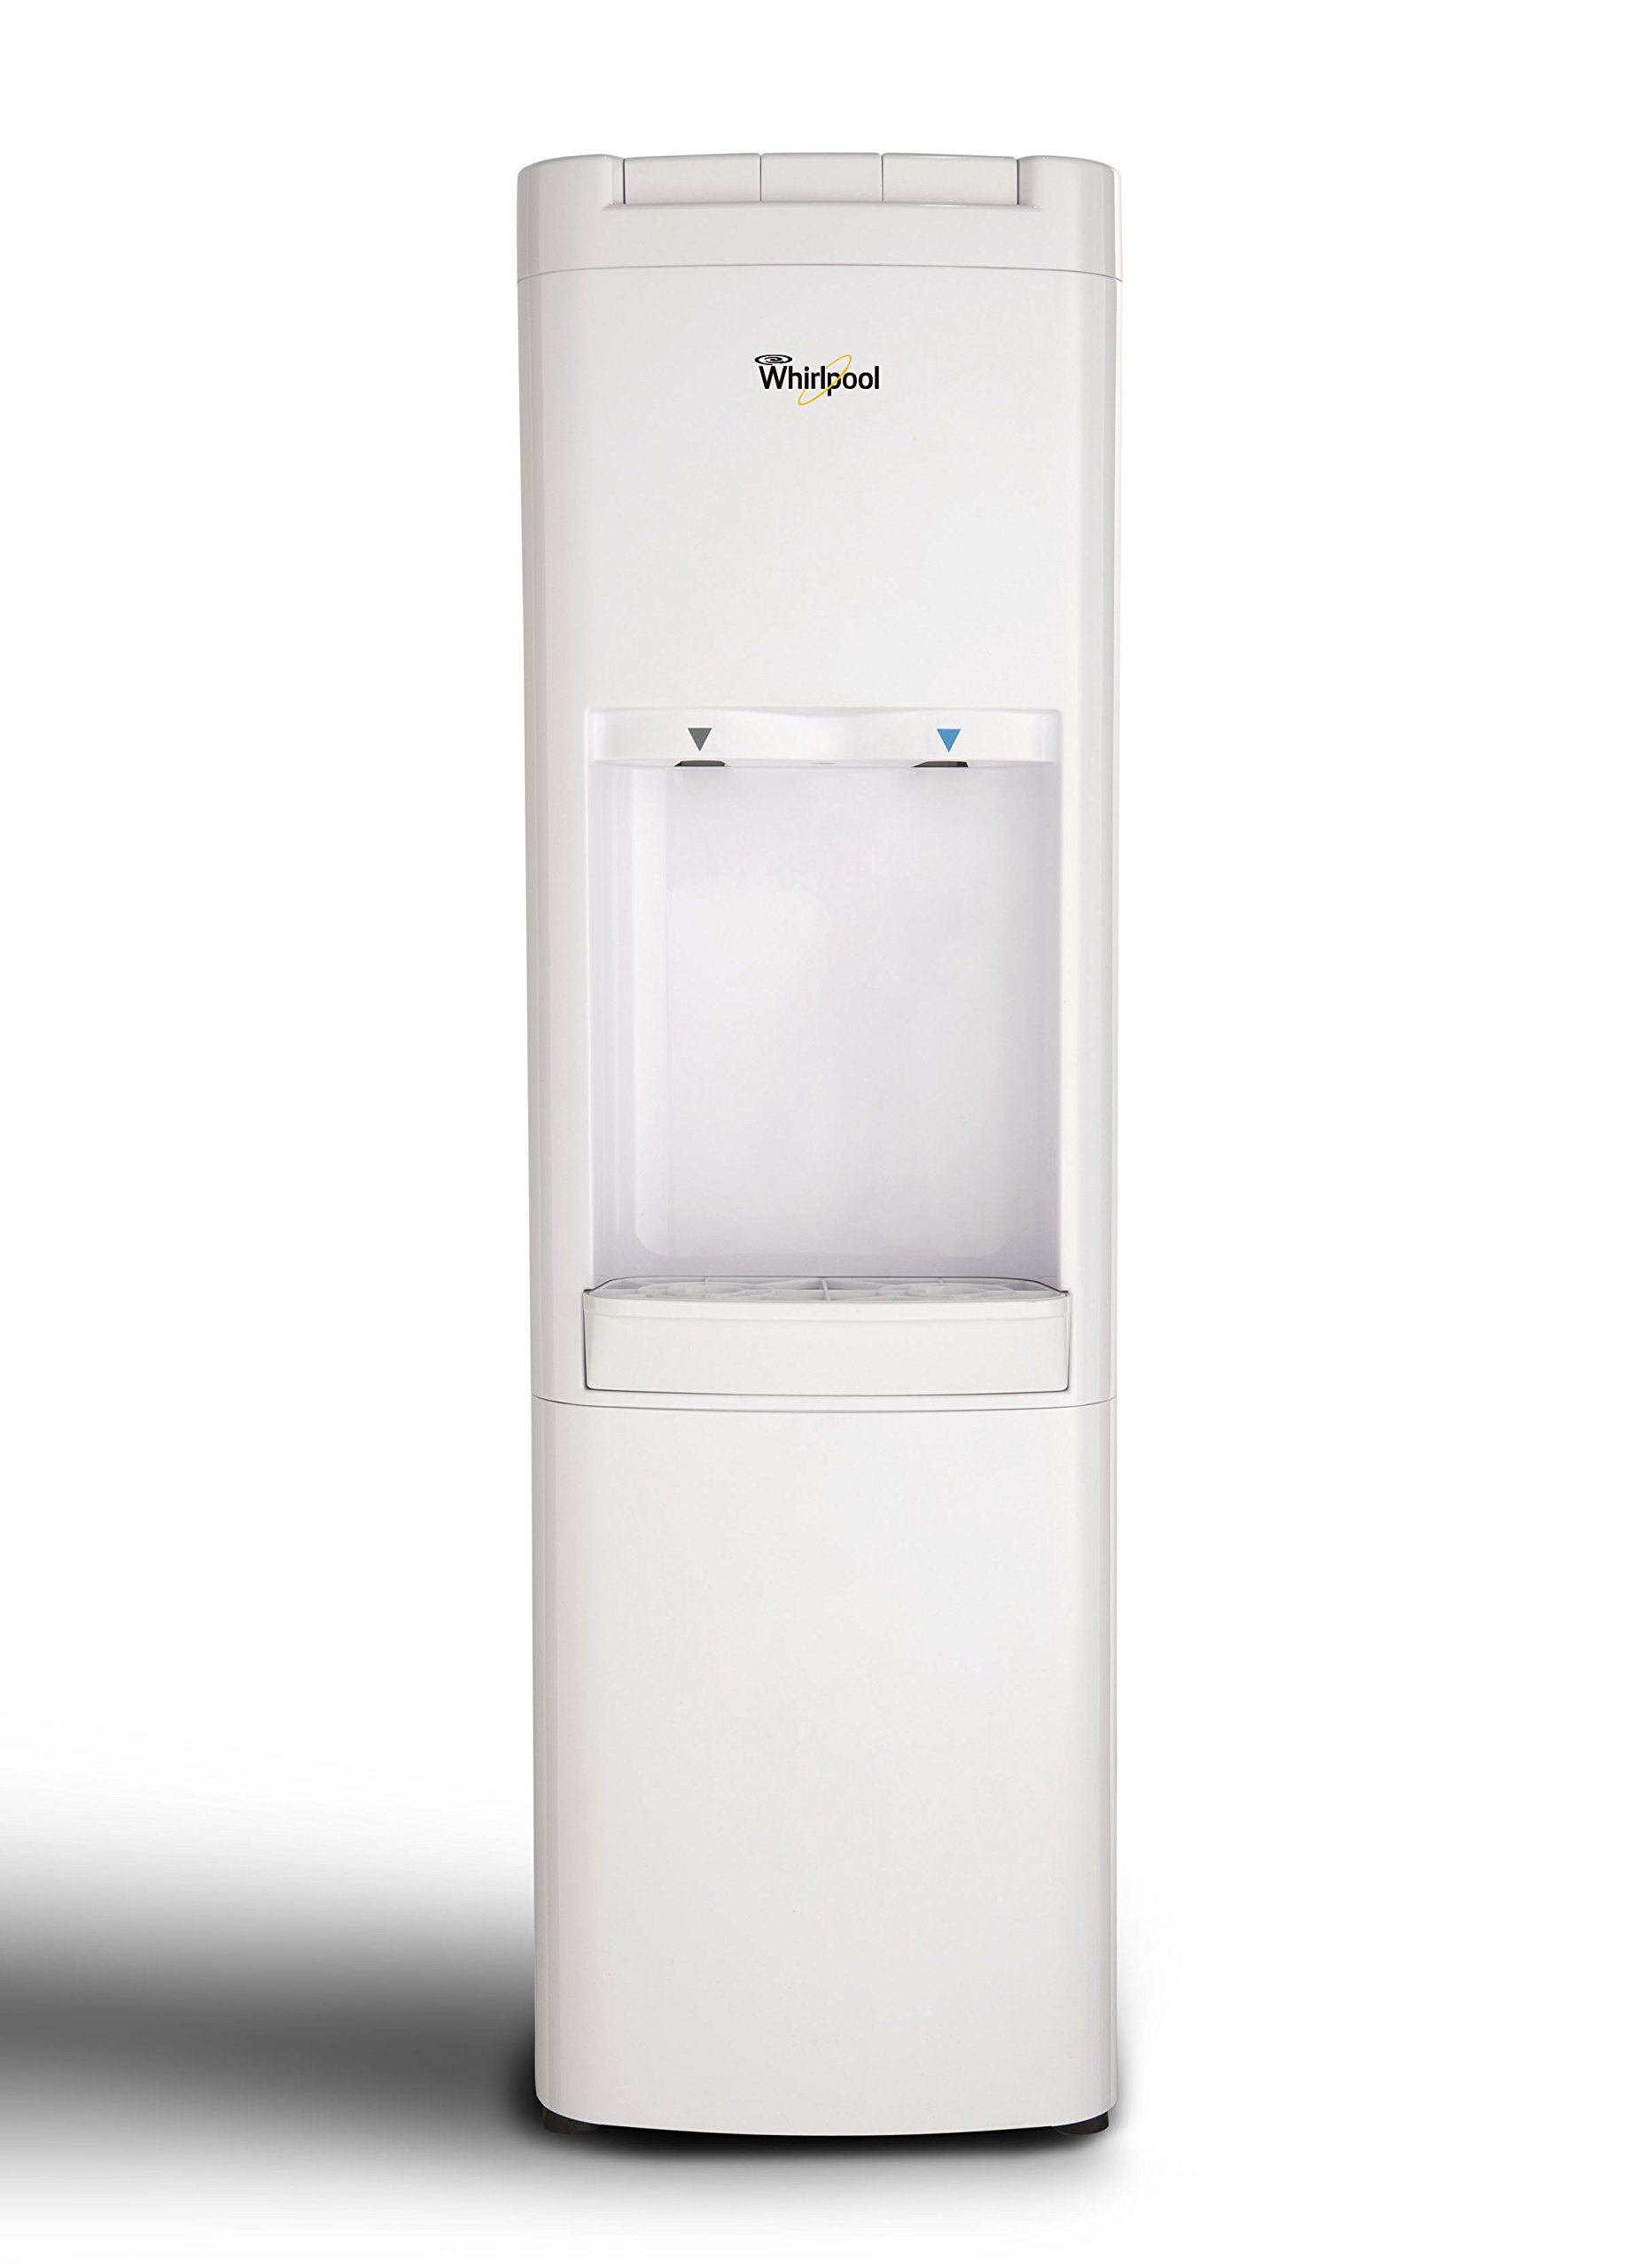 Whirlpool Commercial Water Cooler, Ice Chilled Water, White Water Dispenser by Whirlpool (Image #2)